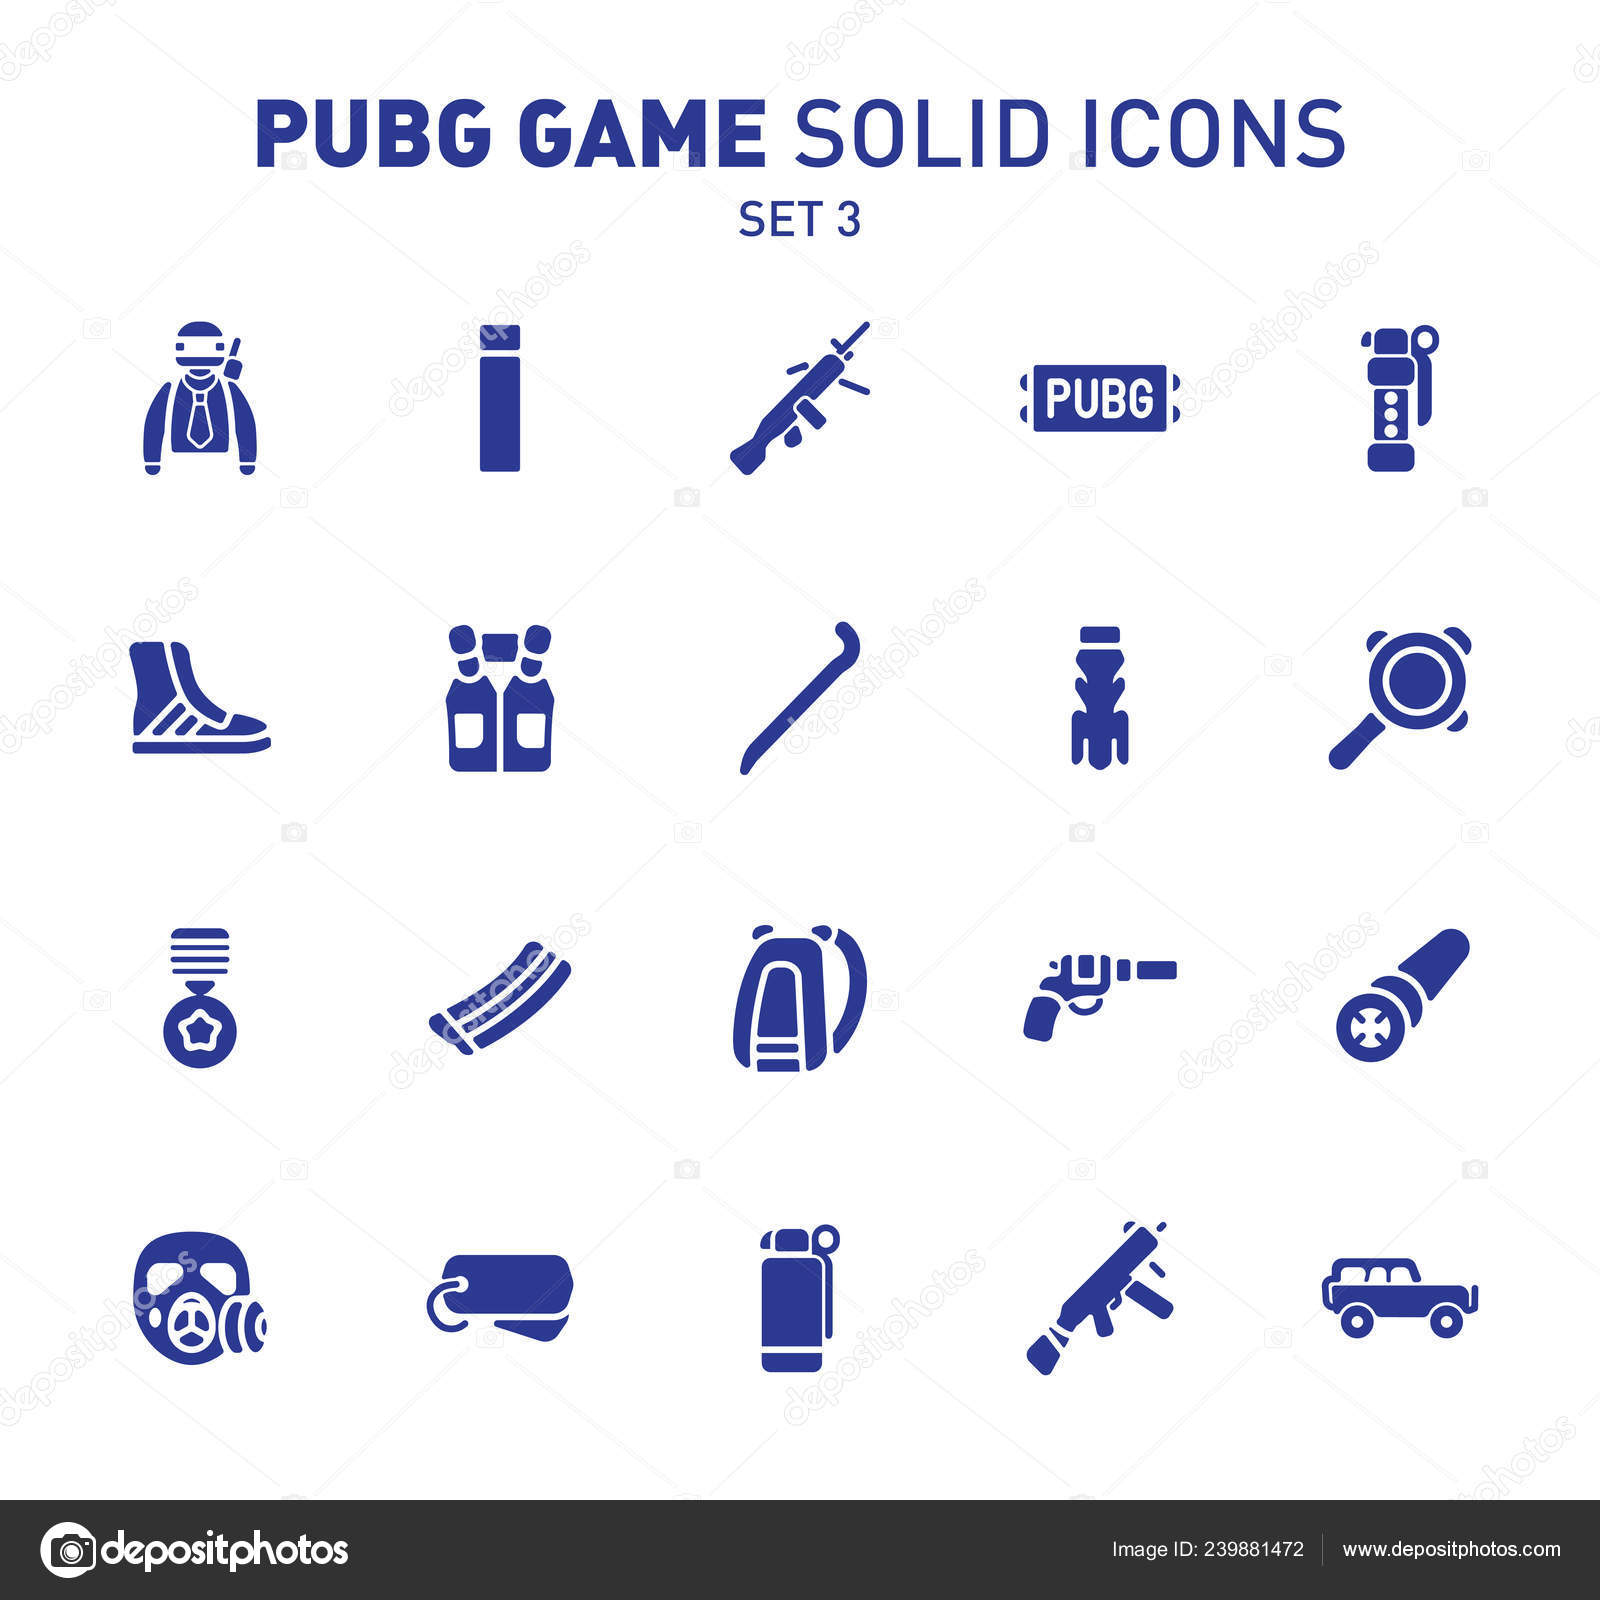 Pubg Game Glyph Icons Vector Illustration Combat Facilities